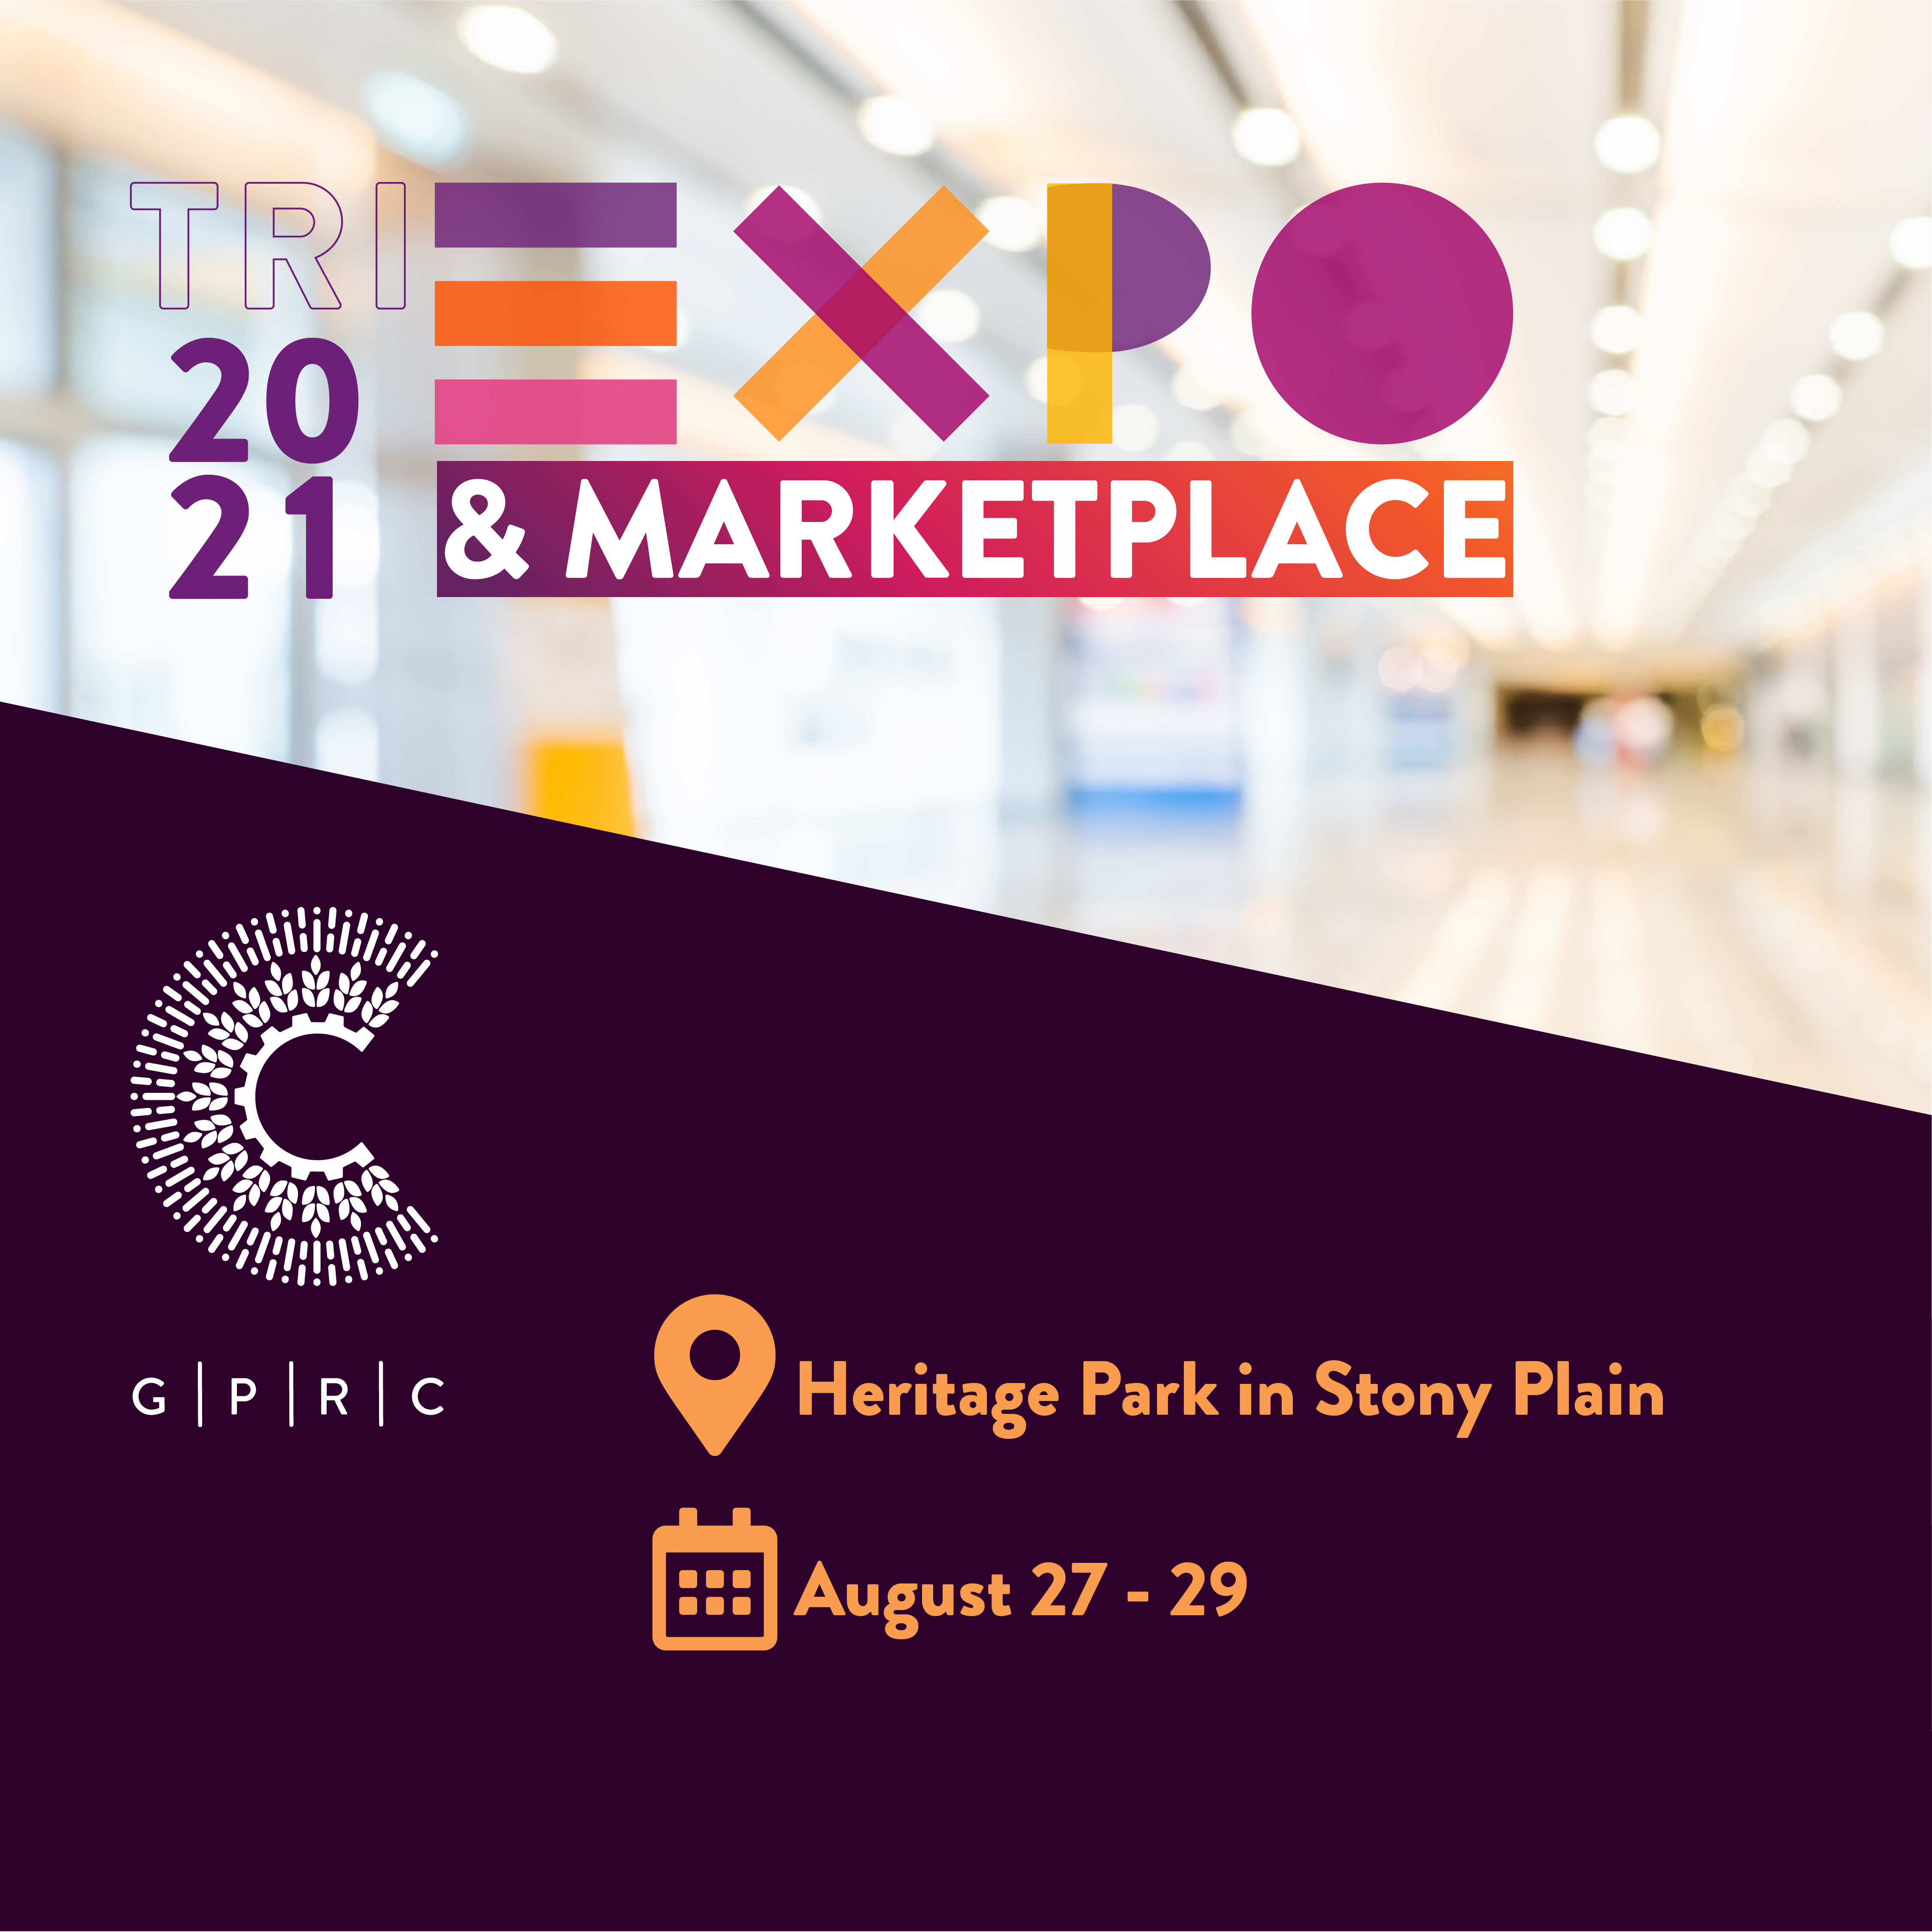 Expo with location and dates 1080x1080